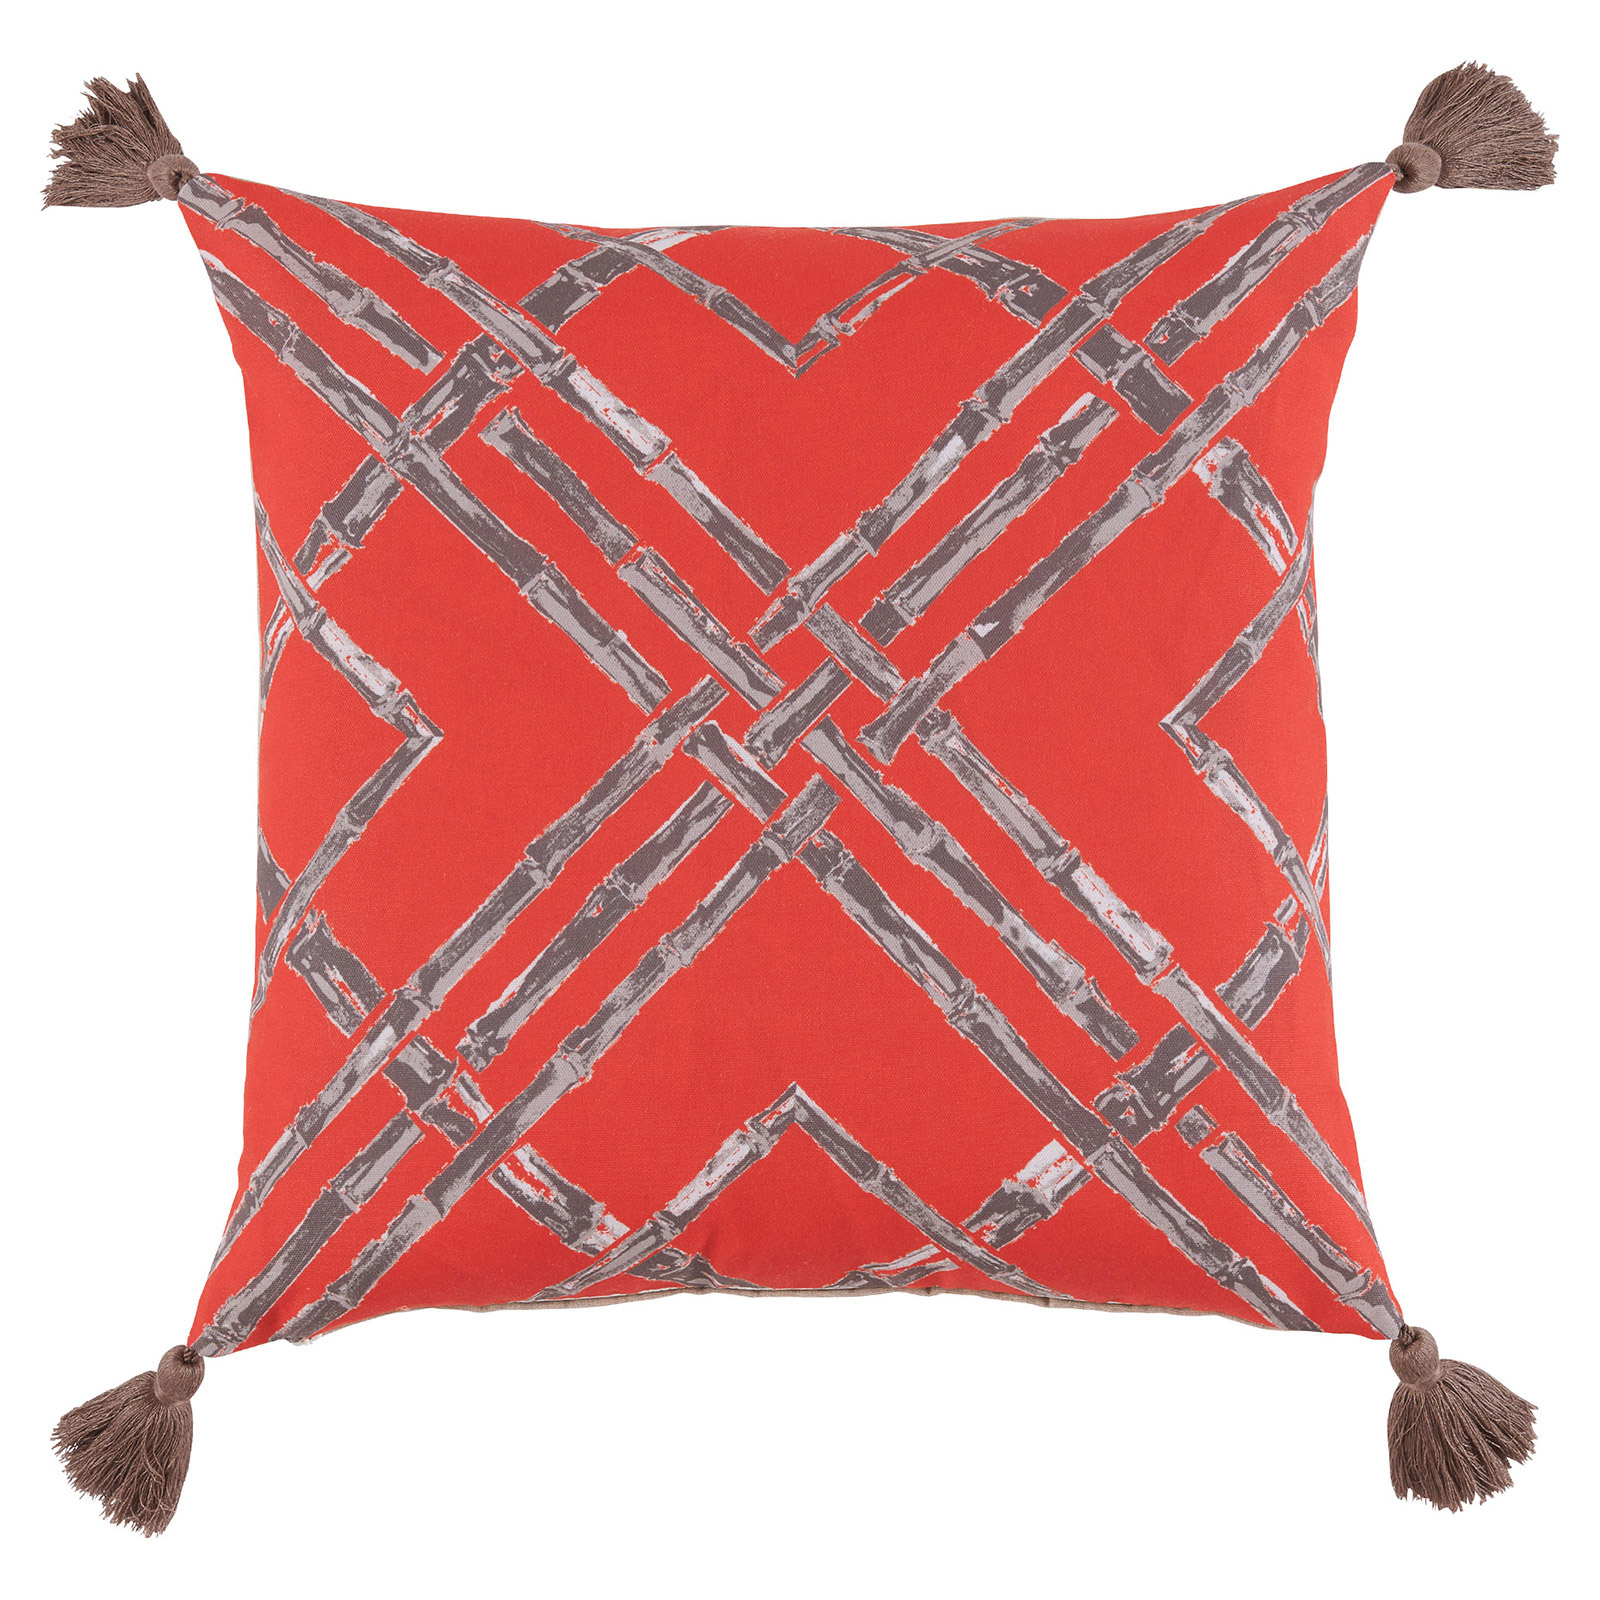 Mumbi Bazaar Melon Bamboo Tassel Outdoor Pillow - 20x20